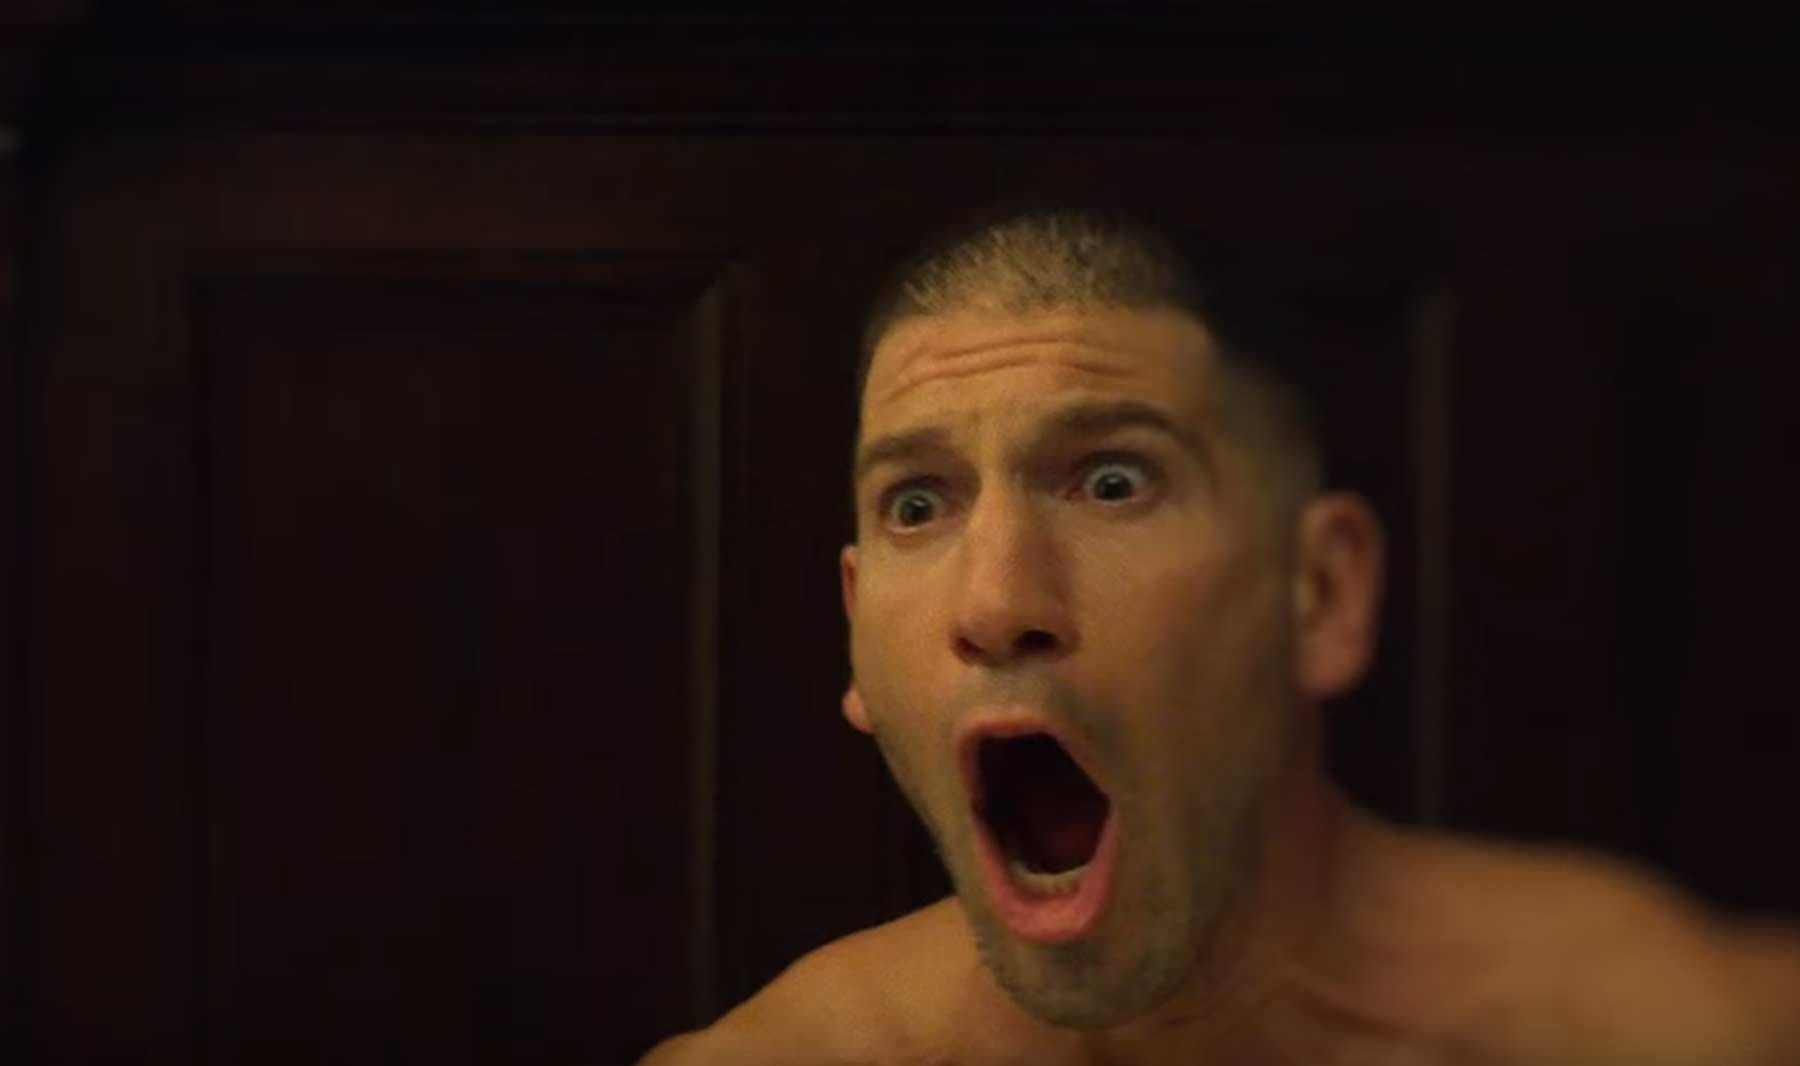 Erster Trailer zu The Punisher